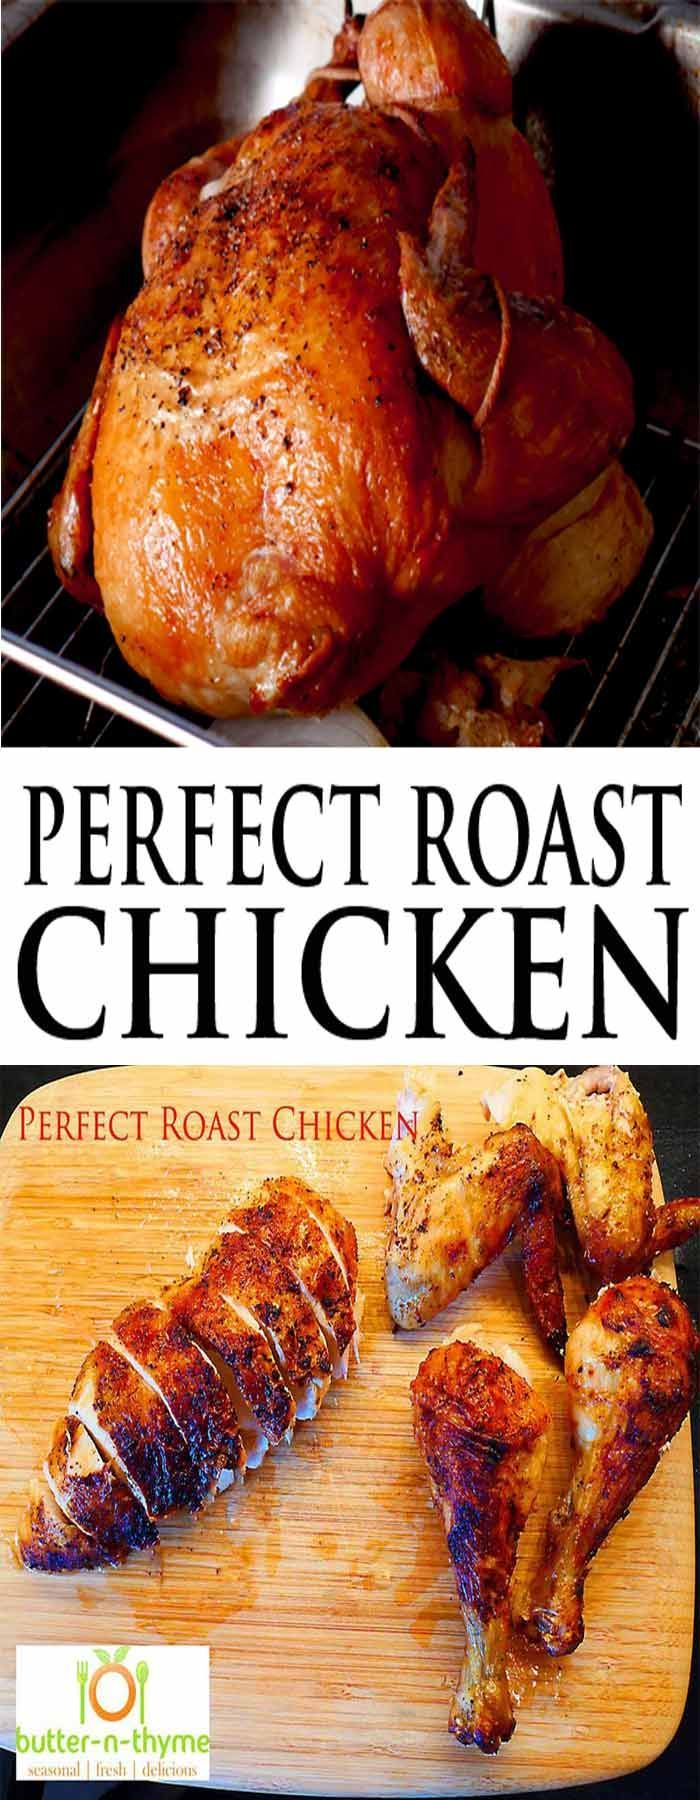 Welcome to the Perfect Roast Chicken. Achieving the perfect roast chicken has been a challenge since the chicken first crossed the road. Let's put this culinary conundrum to rest once and for all. https://www.butter-n-thyme.com #roastchicken #chicken #holiday